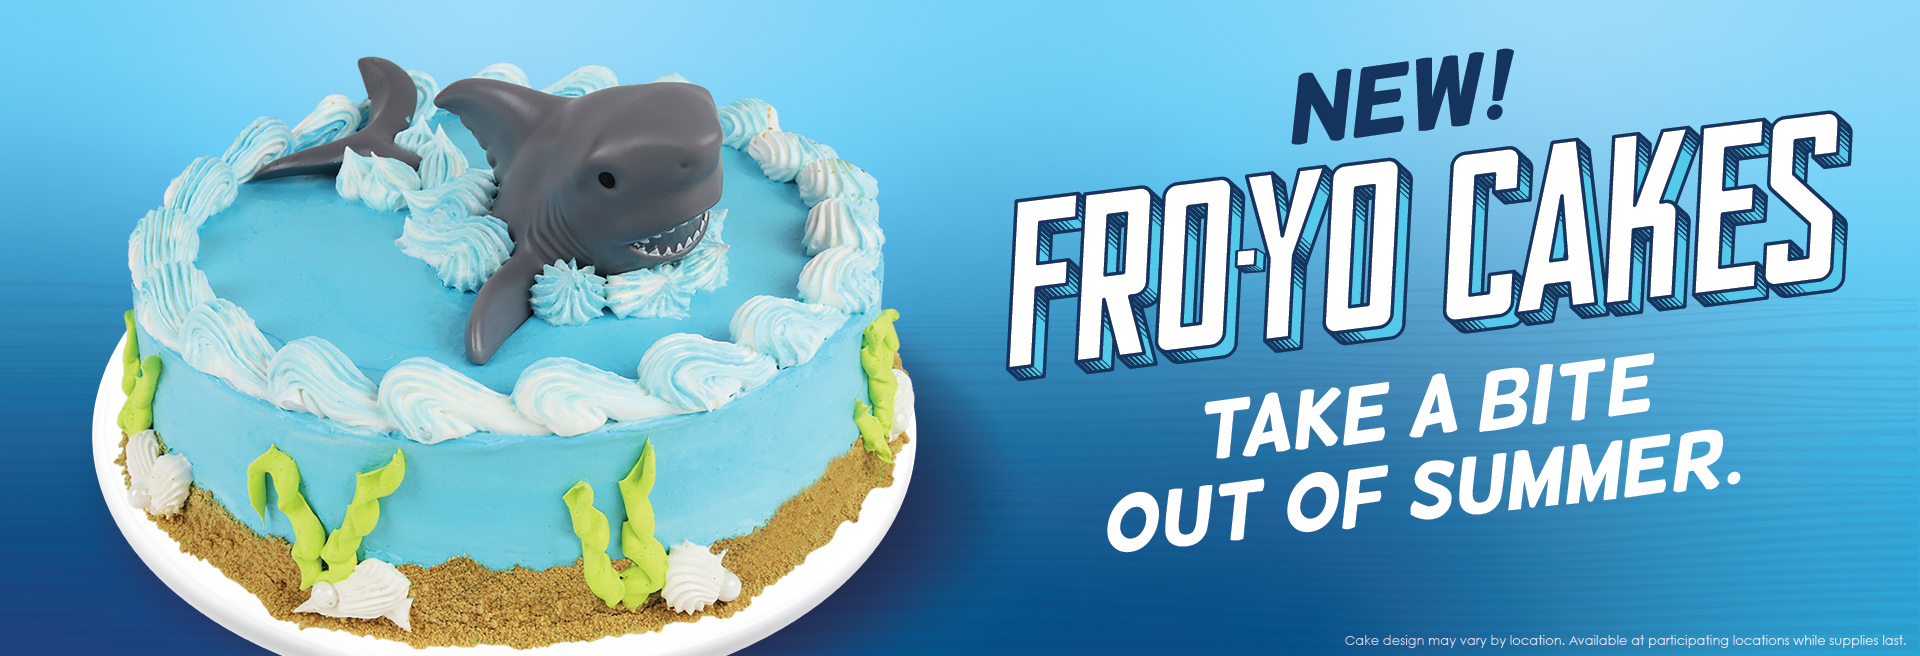 An image of the Shark Creations Frozen Yogurt Cake. Take a bite out of Summer with our Shark Creations Cake. Call a store or order online one today - only from Menchie's.